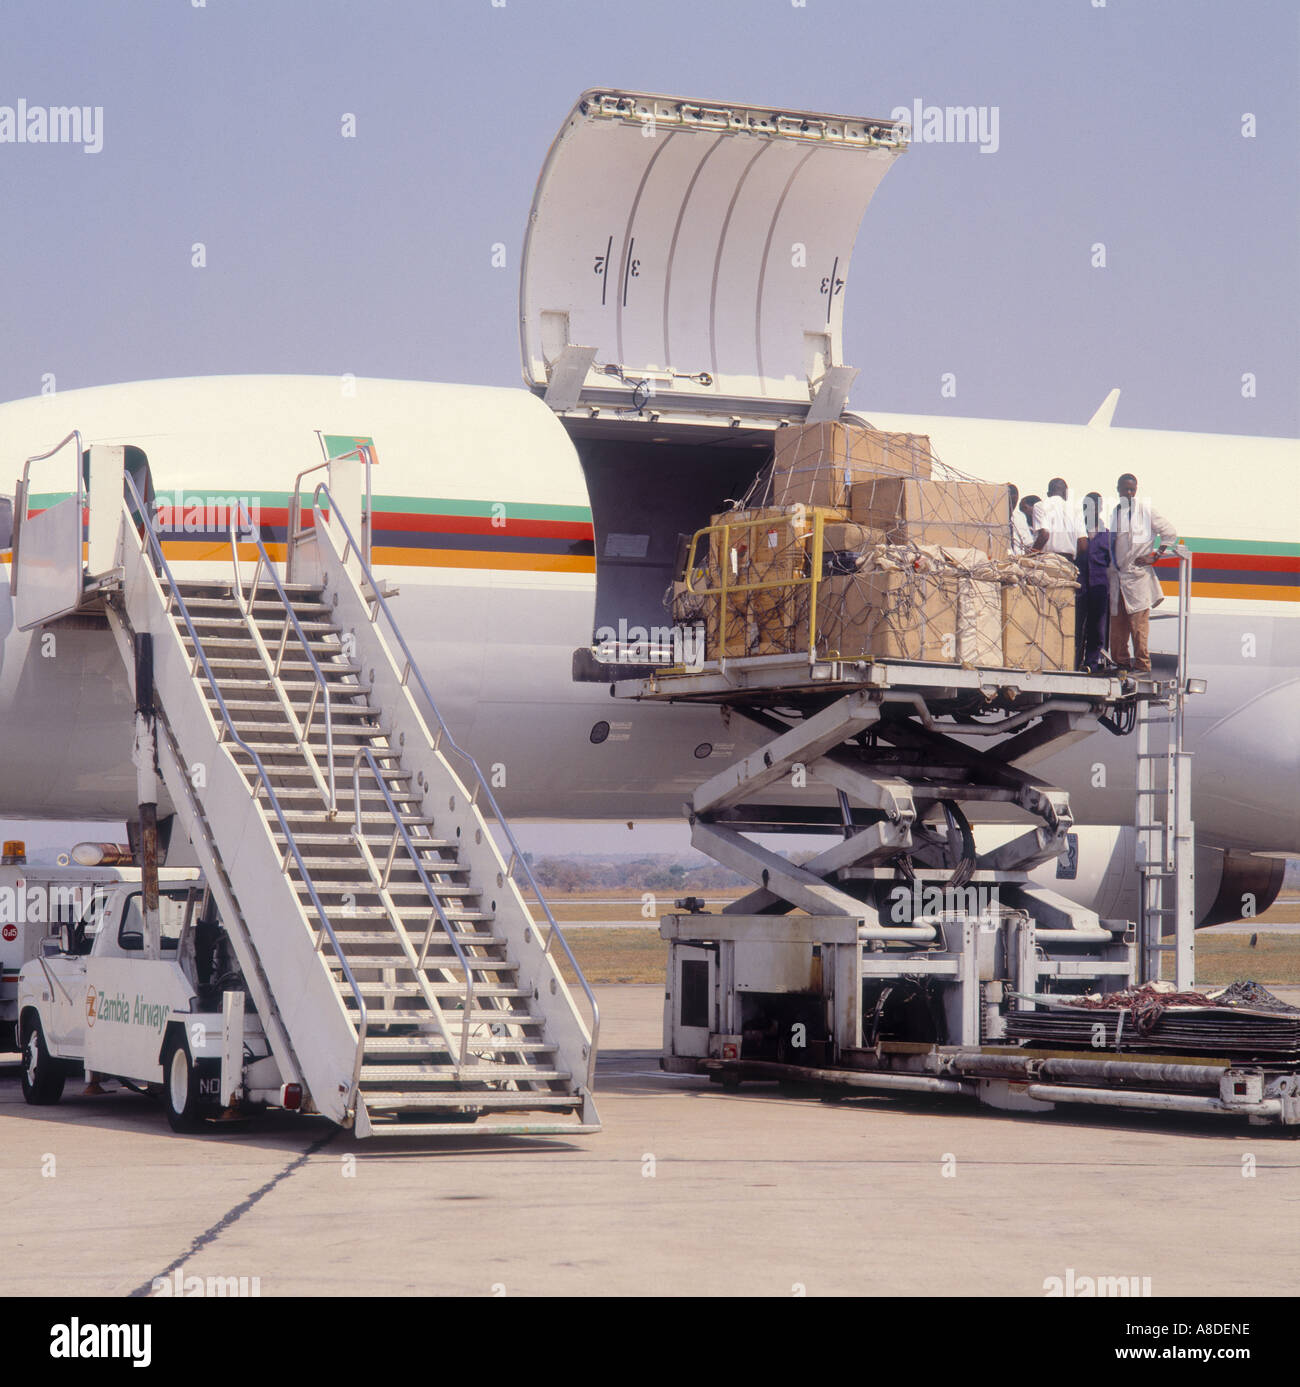 Loading air cargo - Stock Image